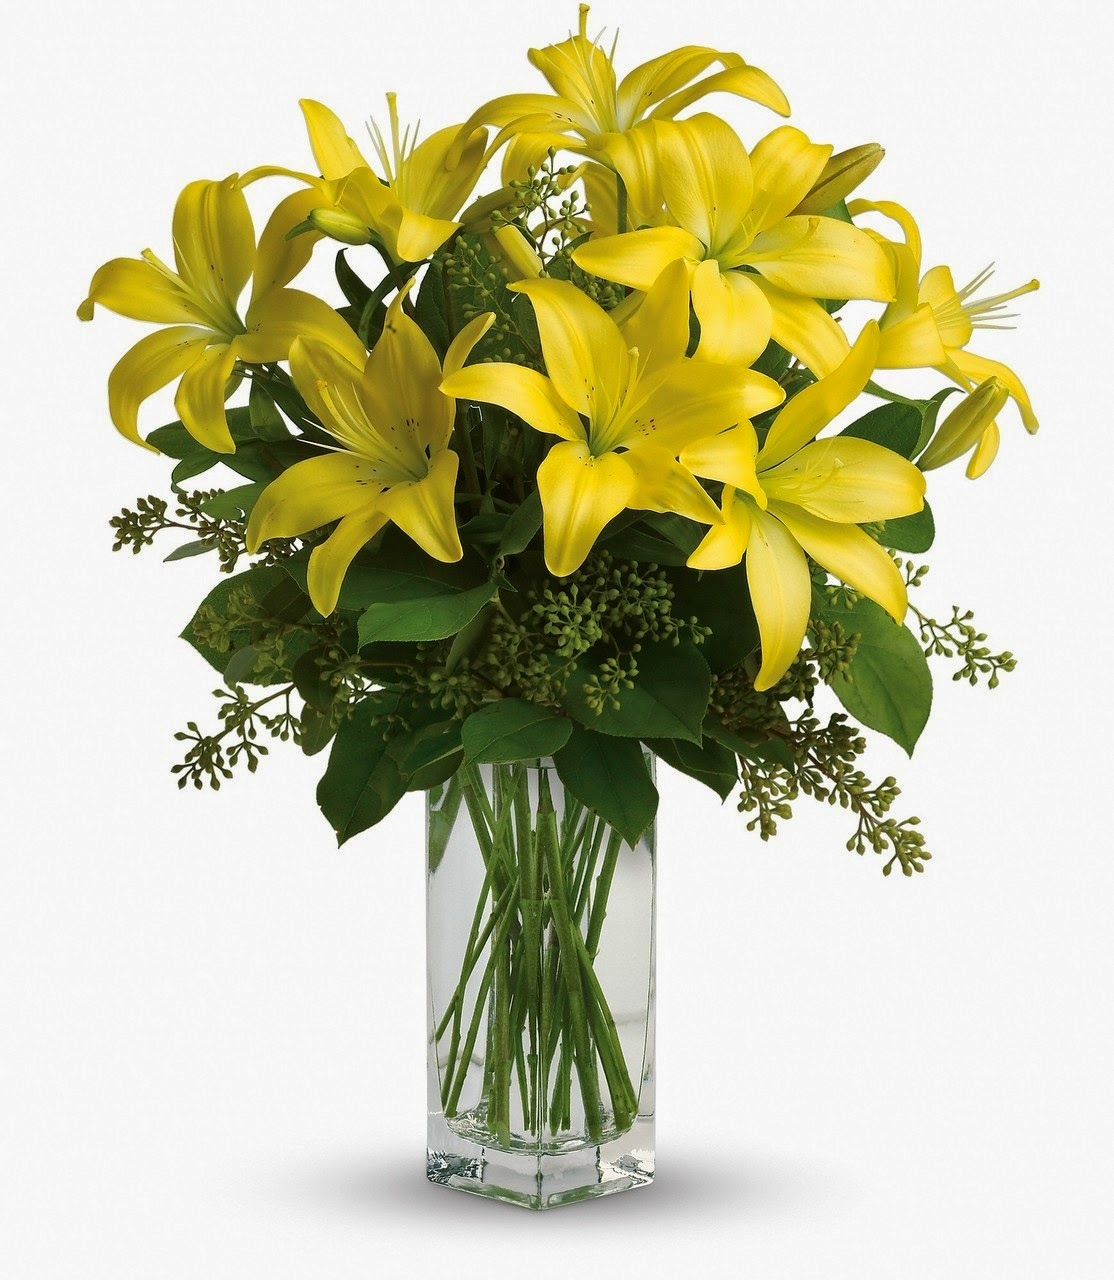 Yellow Lilies Arranged in A Vase